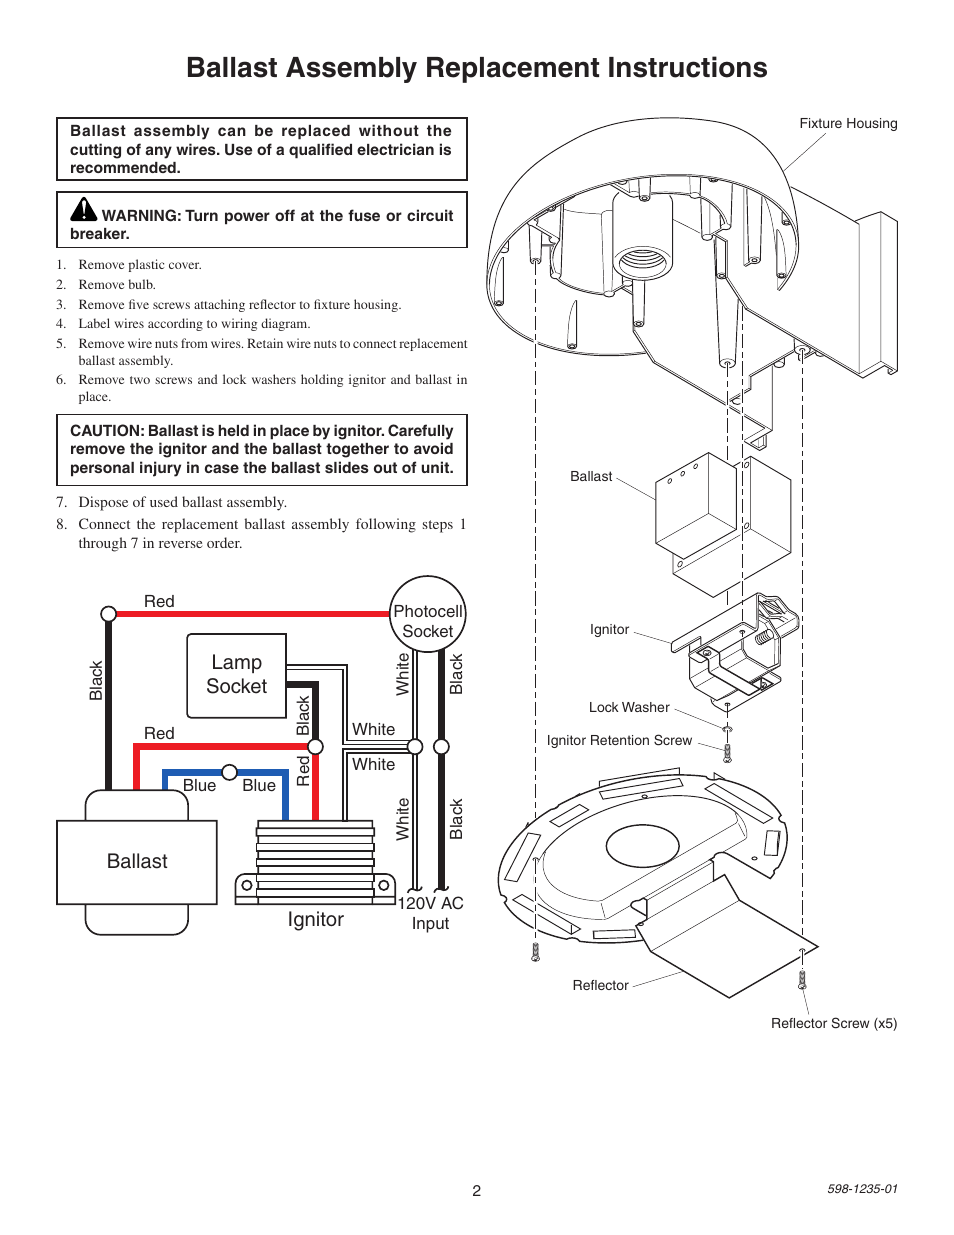 medium resolution of ballast assembly replacement instructions lamp socket ballast ignitor heath zenith sl 5679 user manual page 2 8